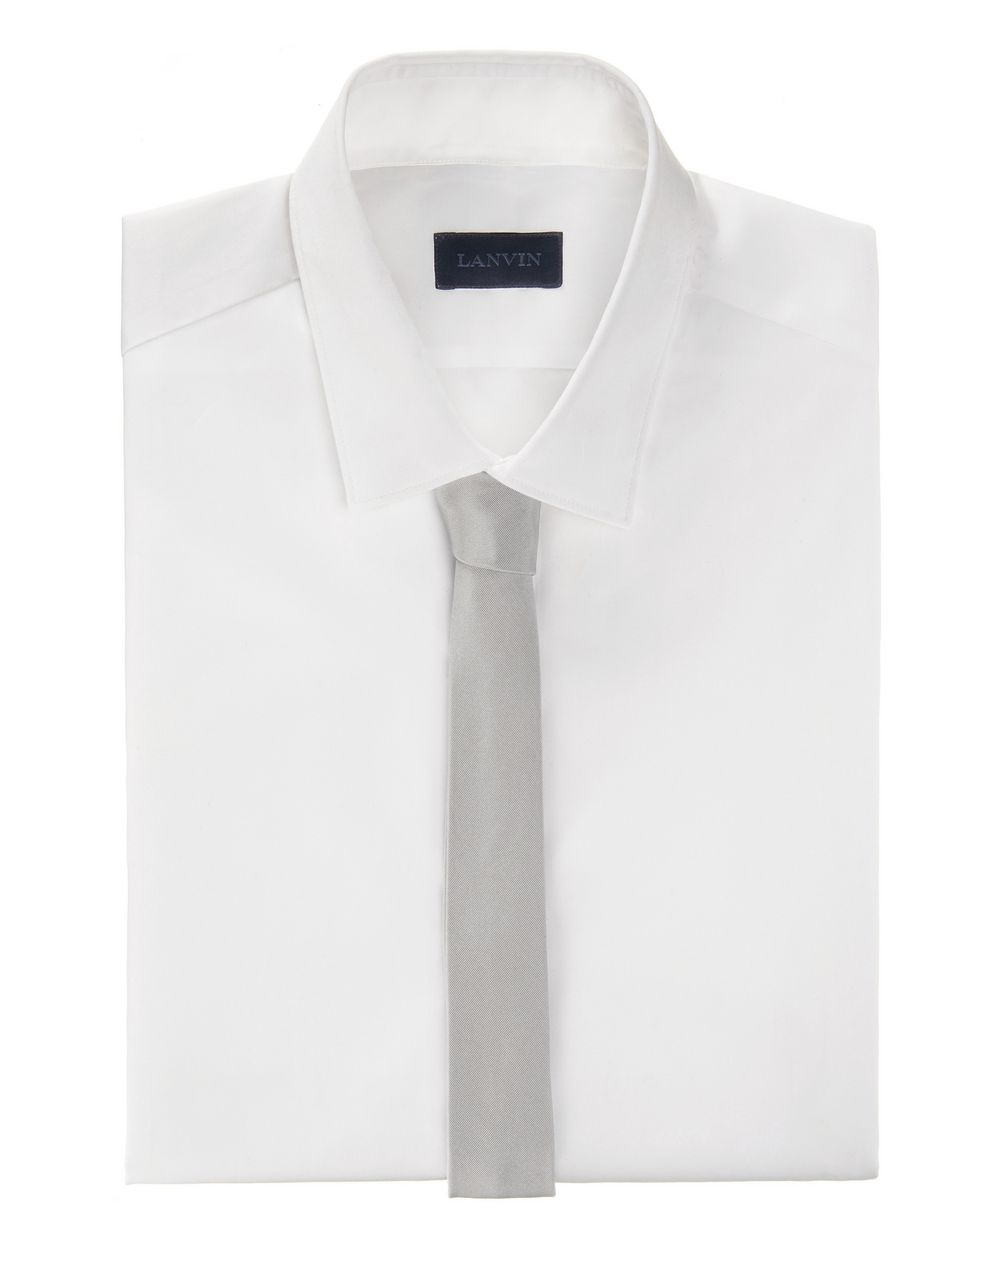 Narrow pale gray tie with a twill motif - Lanvin